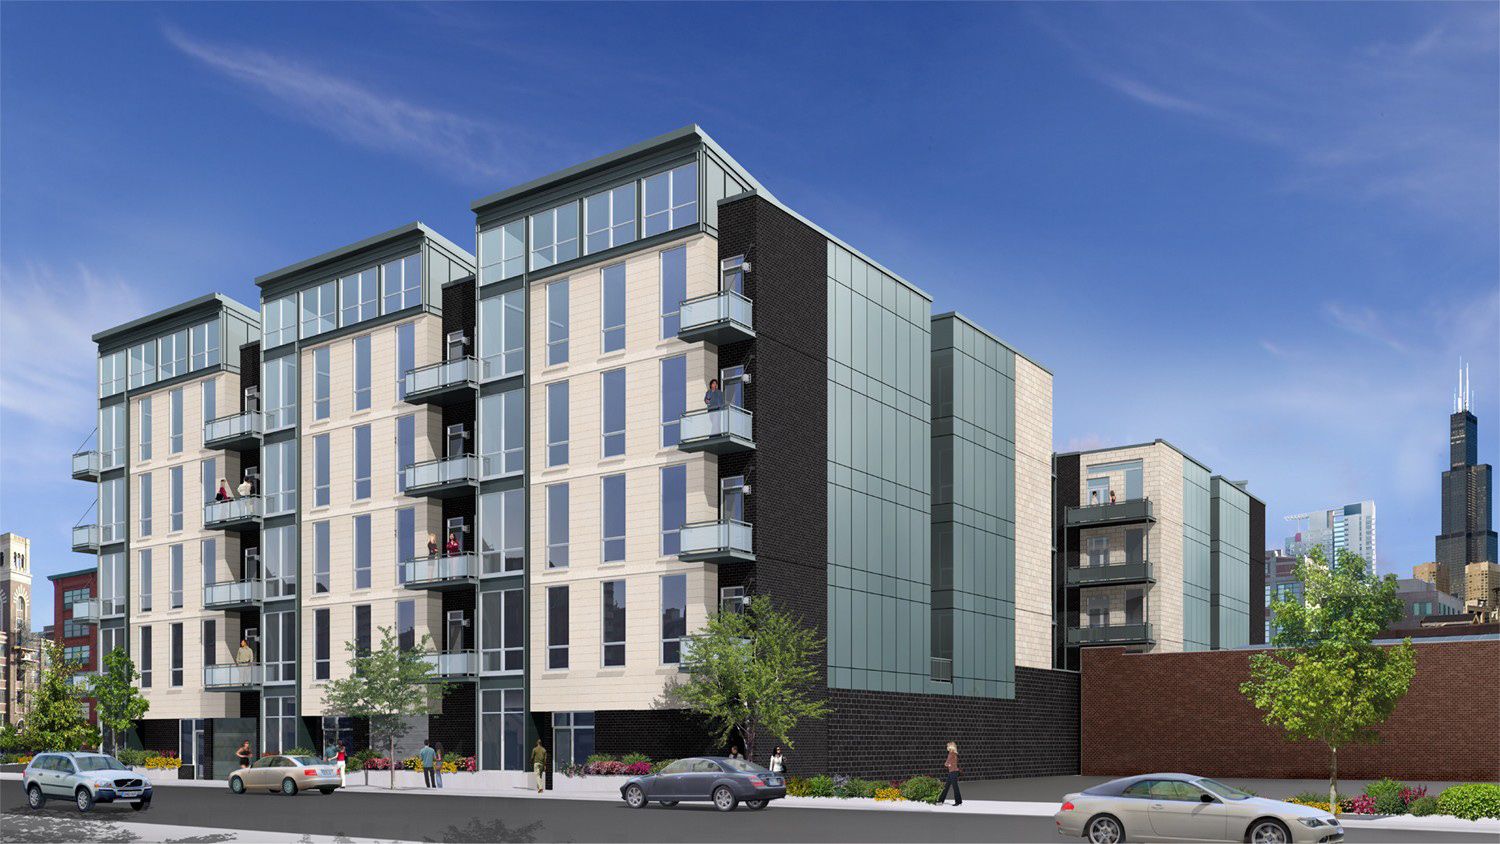 Chicago 39 s best new homes in 2008 yochicago for Building residential homes